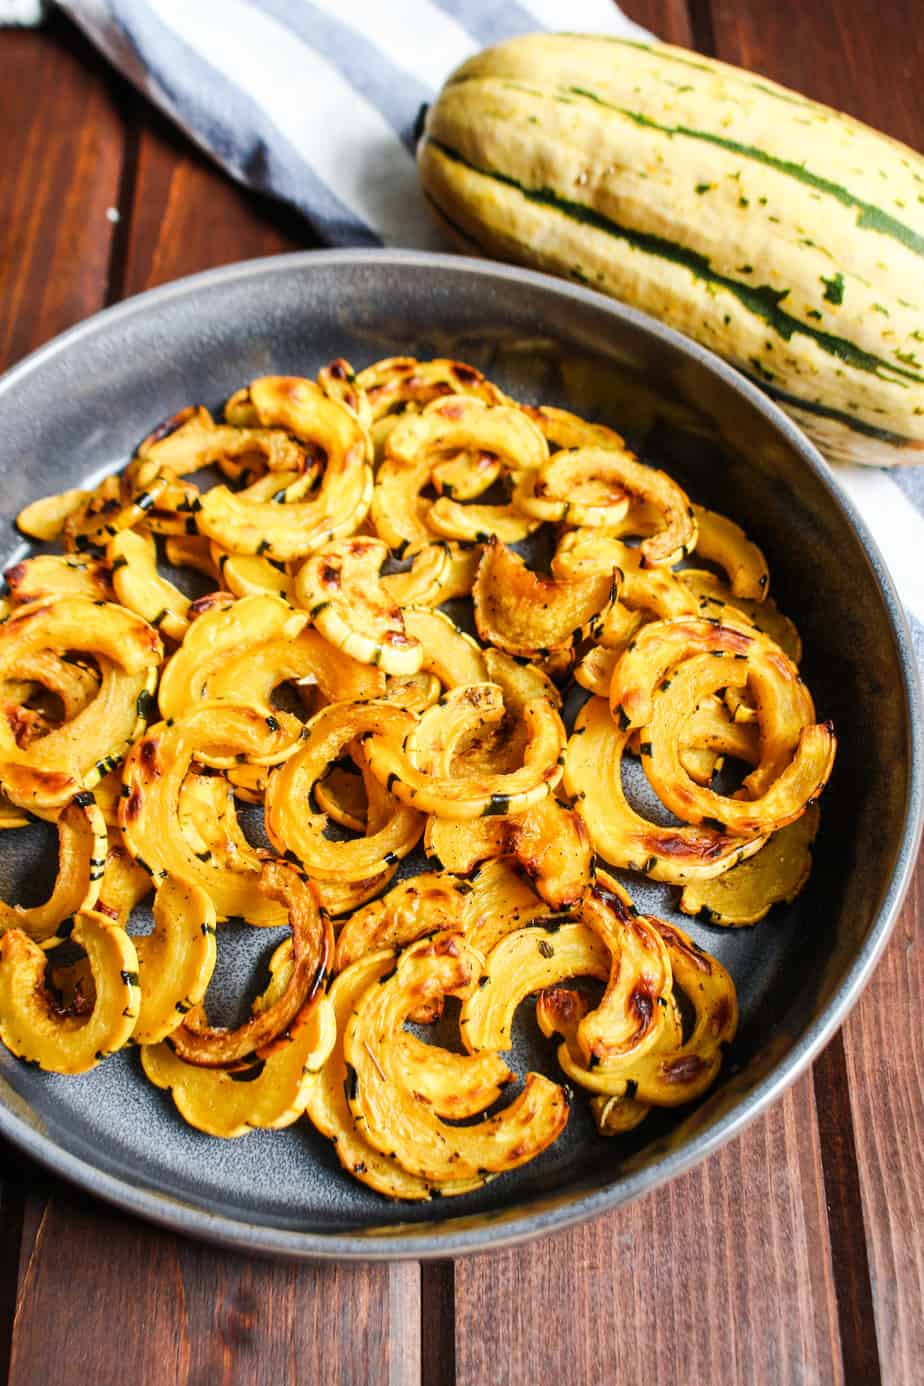 Roasted Delicata Squash In Dish